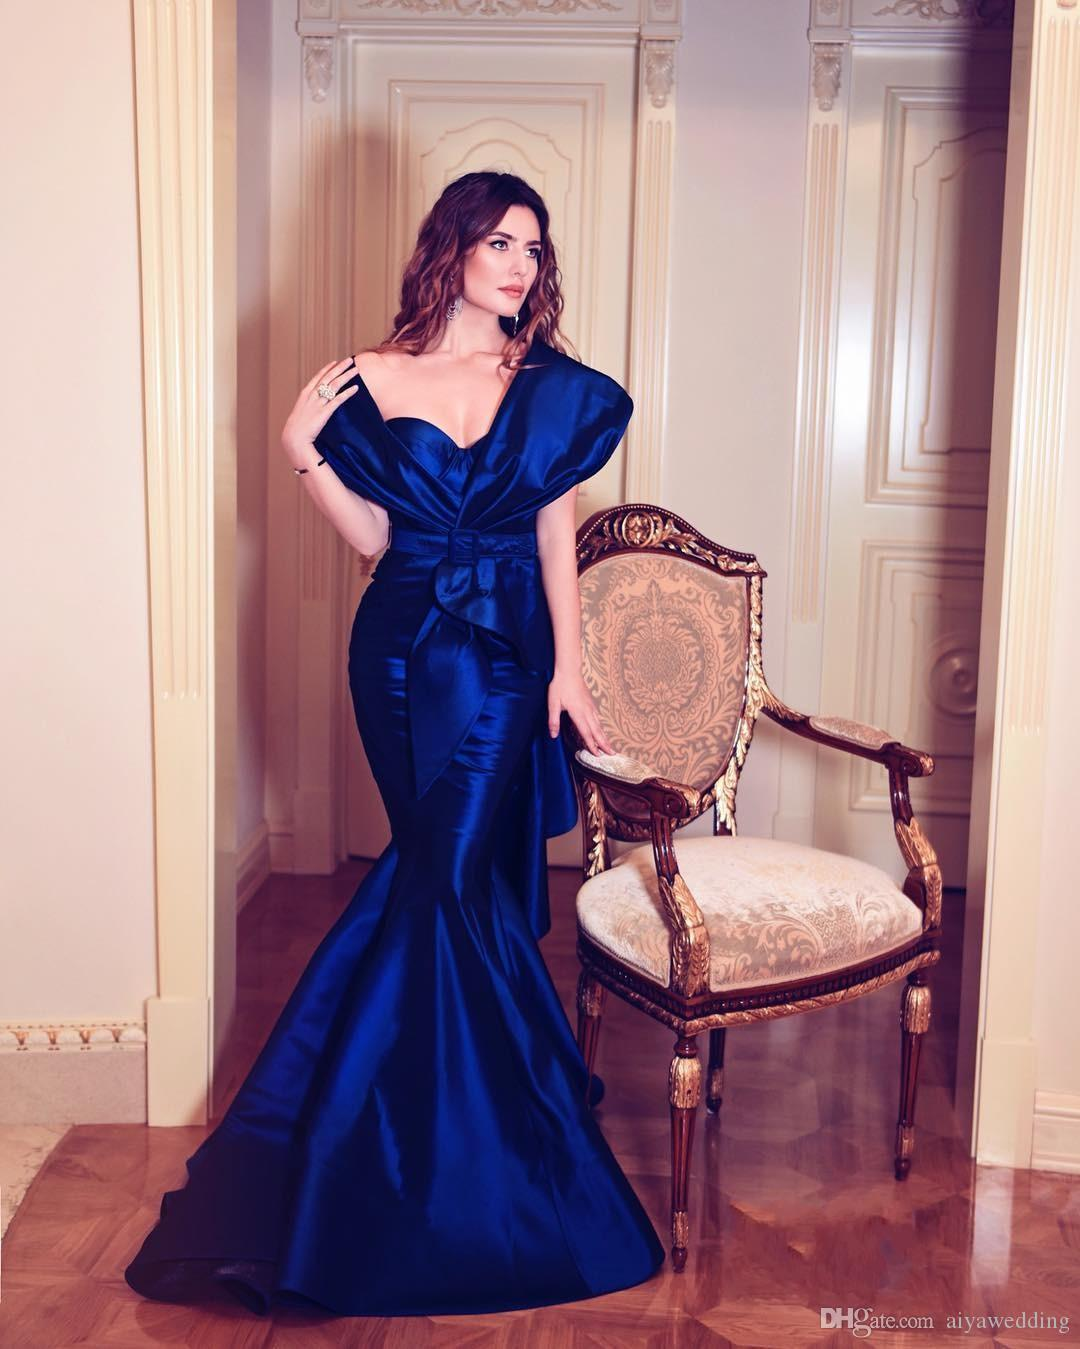 ac77a4d8830 Cheap Diamond Blue Long Evening Dresses Sexy Off Shoulder Ruffles Ruched  Mermaid Formal Prom Dress Saudi Arabia Celebrity Party Gowns Navy Evening  Dresses ...